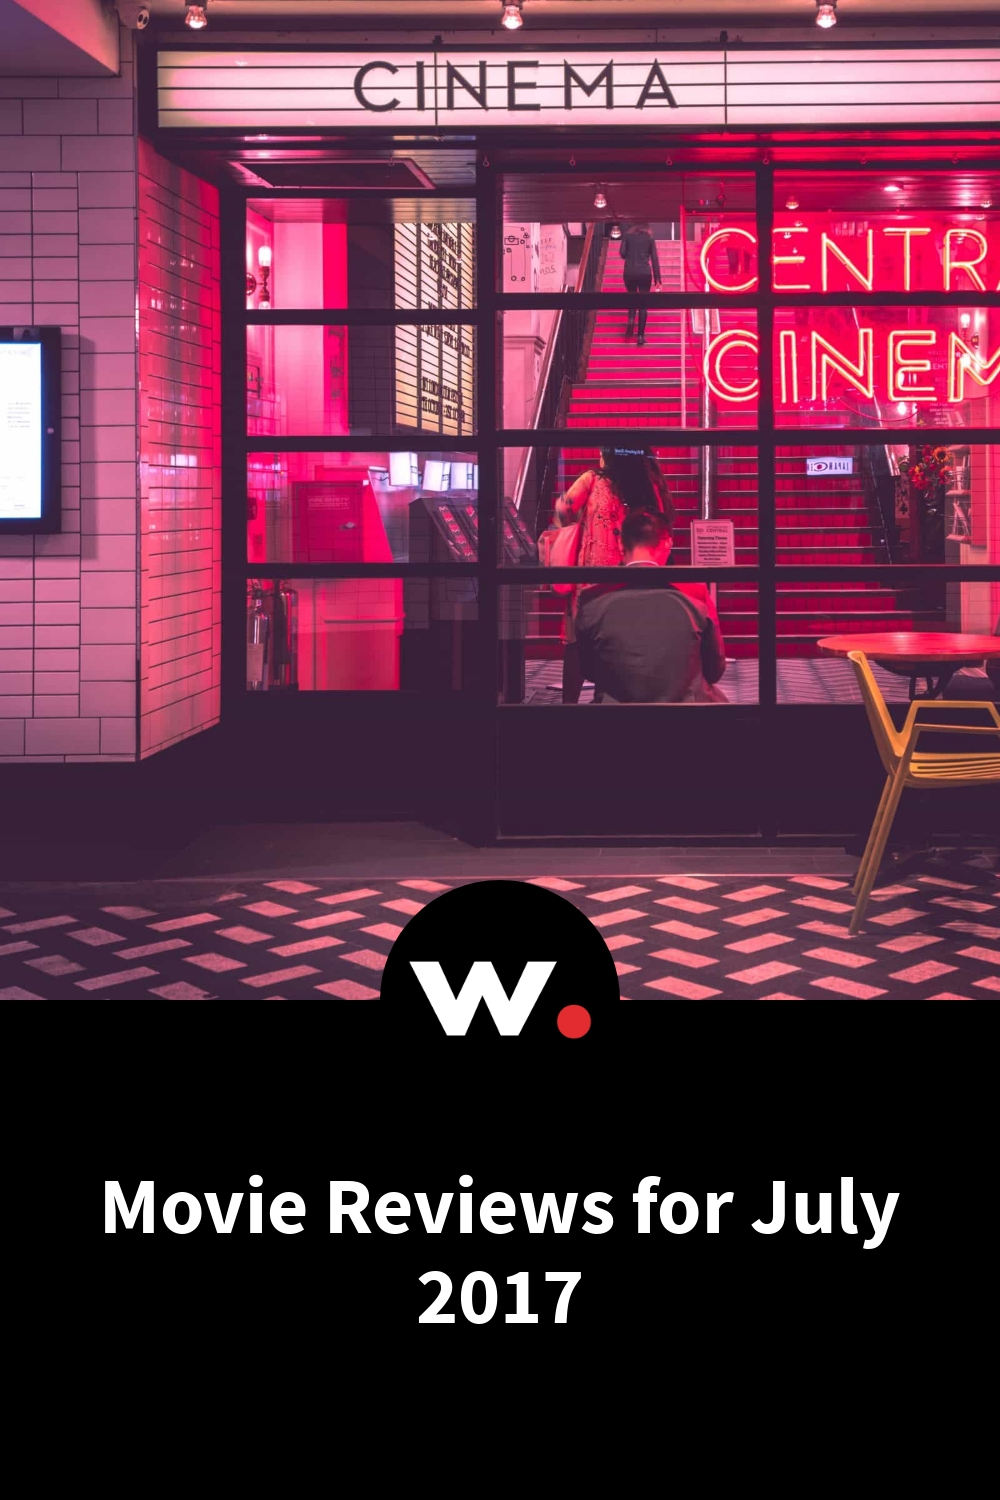 Movie Reviews for July 2017